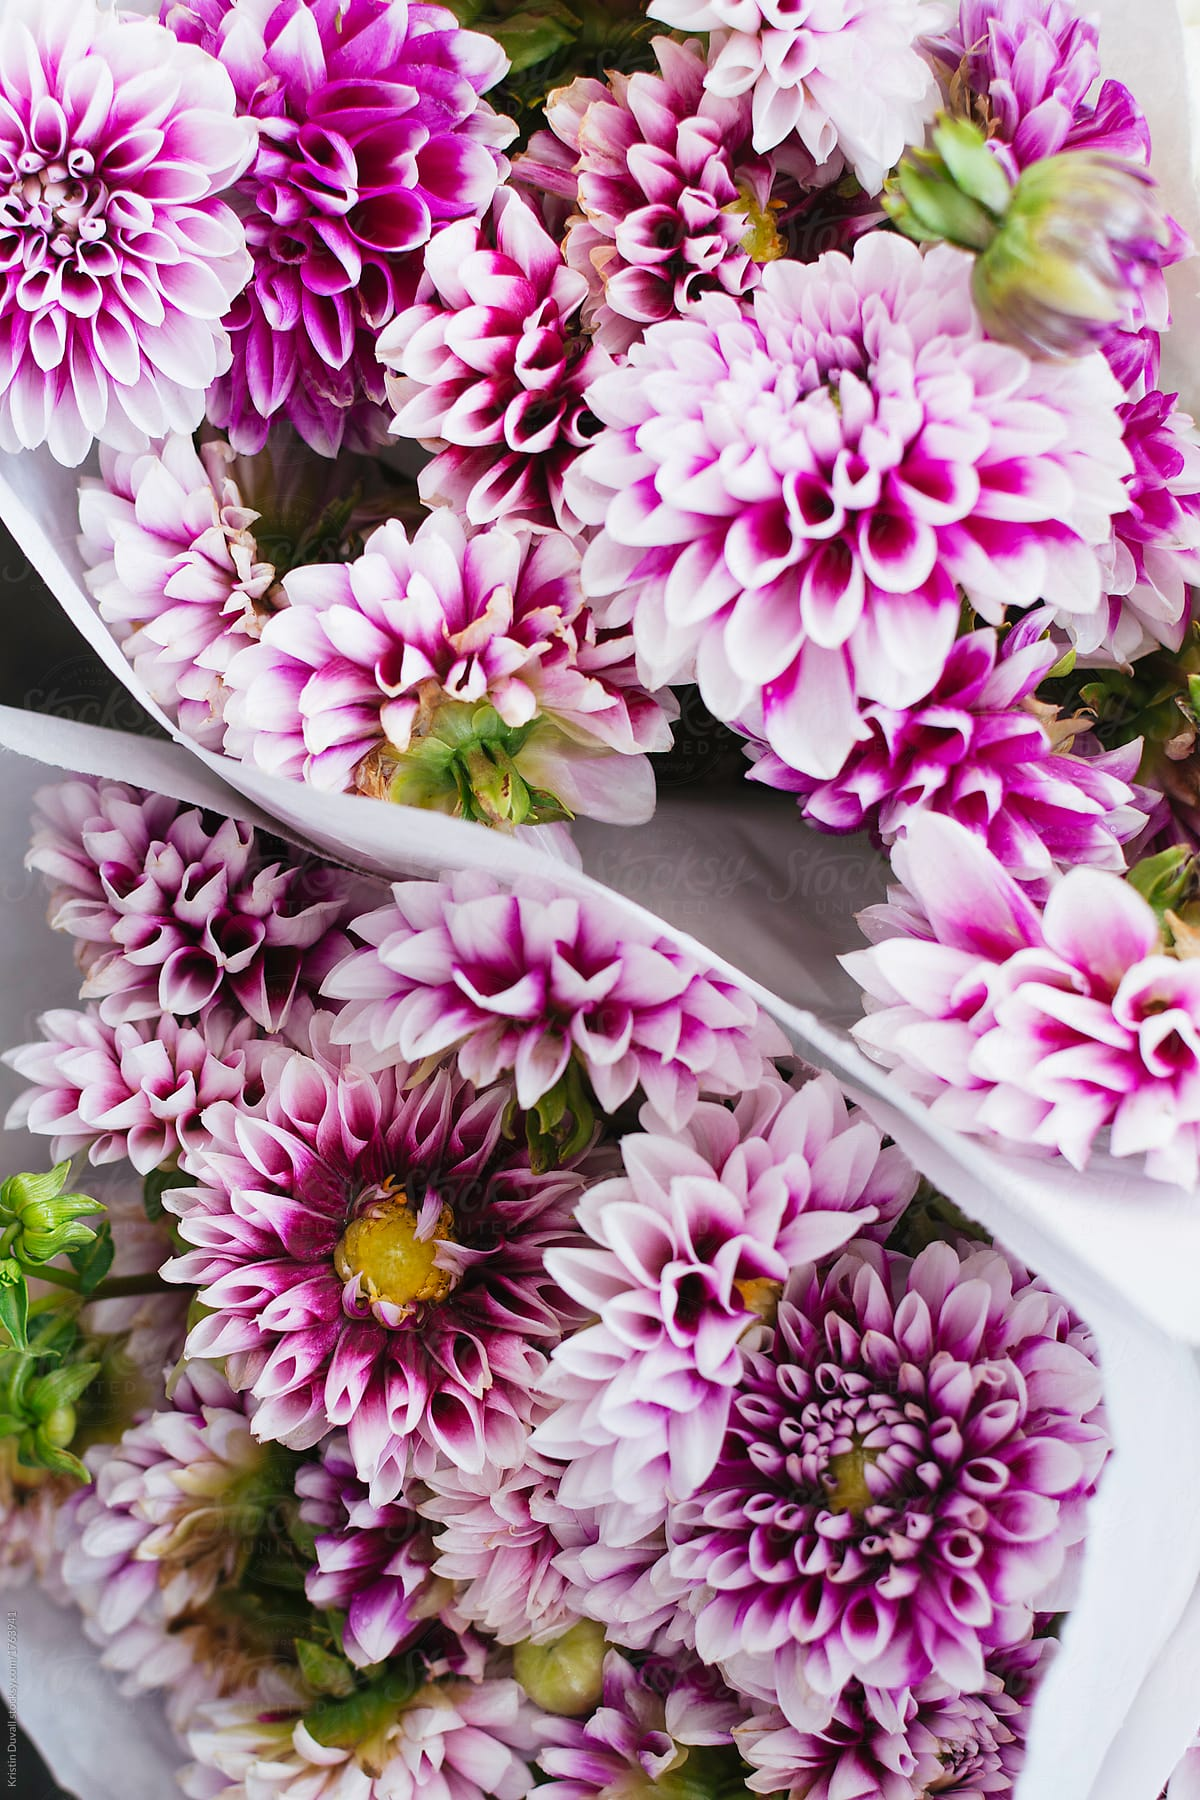 Bouquets of purple and white dahlia flowers stocksy united bouquets of purple and white dahlia flowers by kristin duvall for stocksy united izmirmasajfo